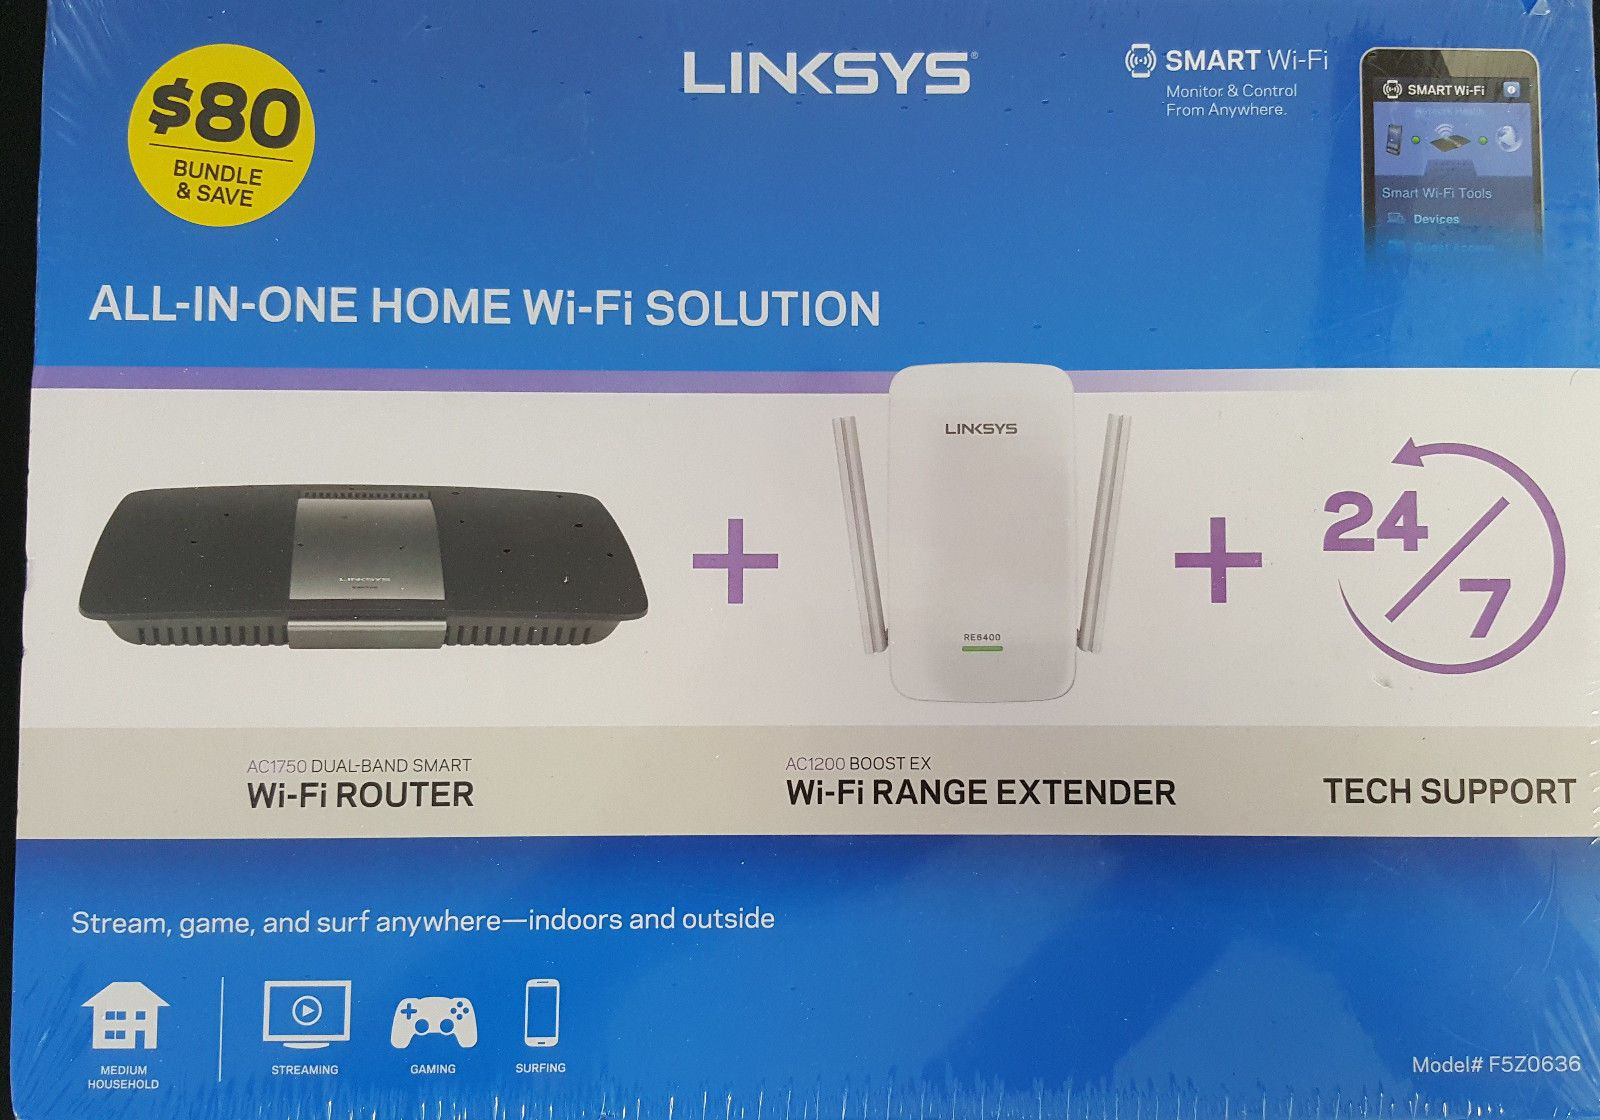 Linksys F5z0636 Ac1750 Wi Fi Router Ac1200 Boost Extender New In Box Linksys Router Wifi